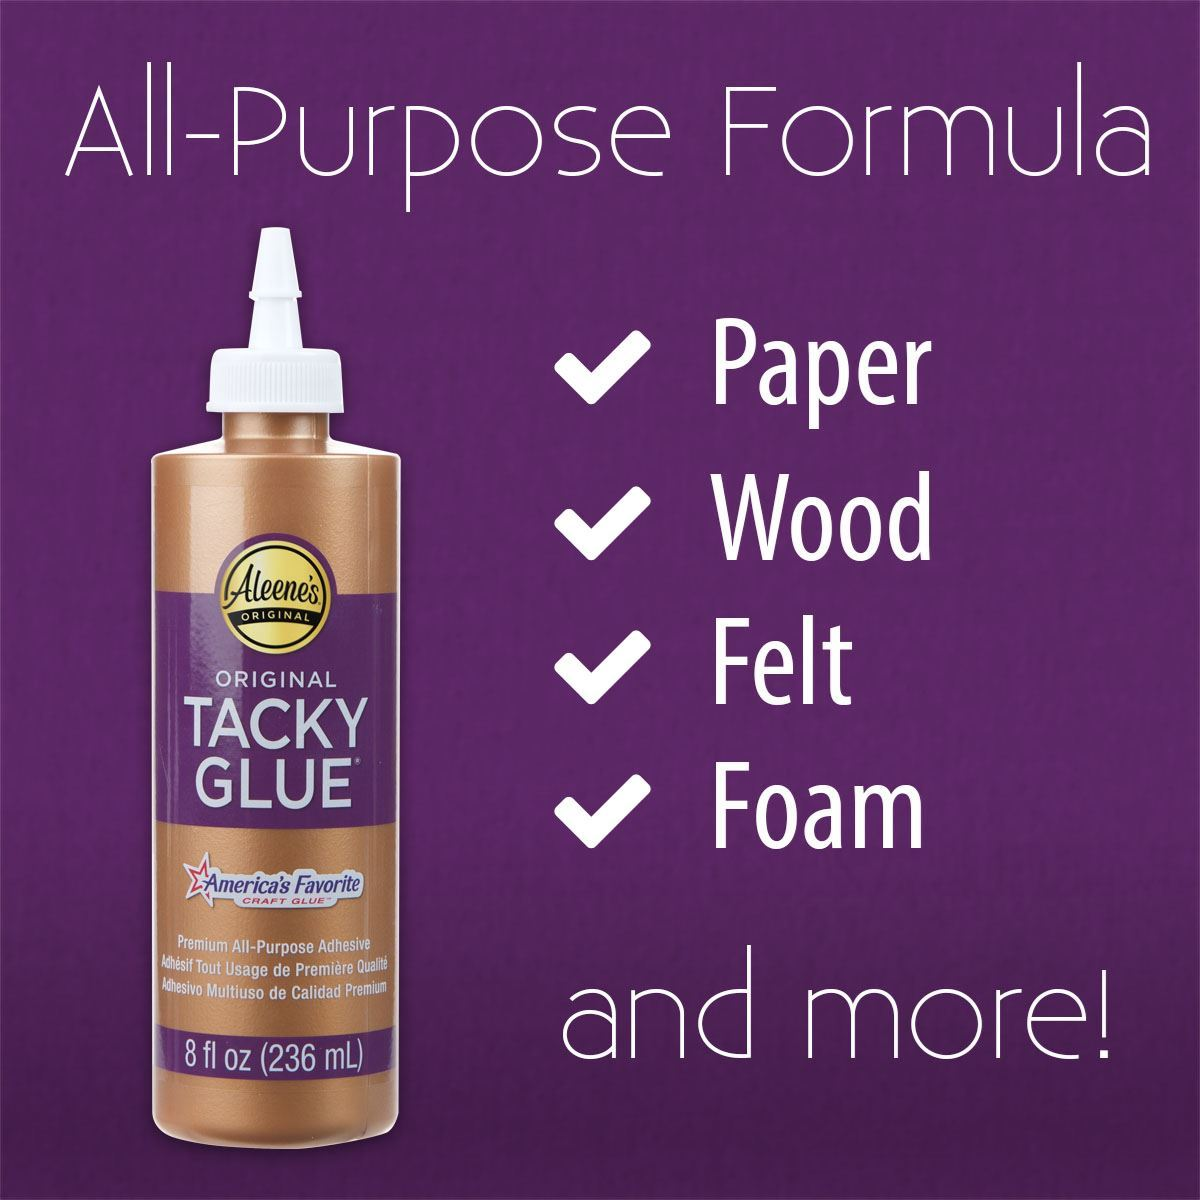 Aleene's® Original Tacky Glue - surfaces